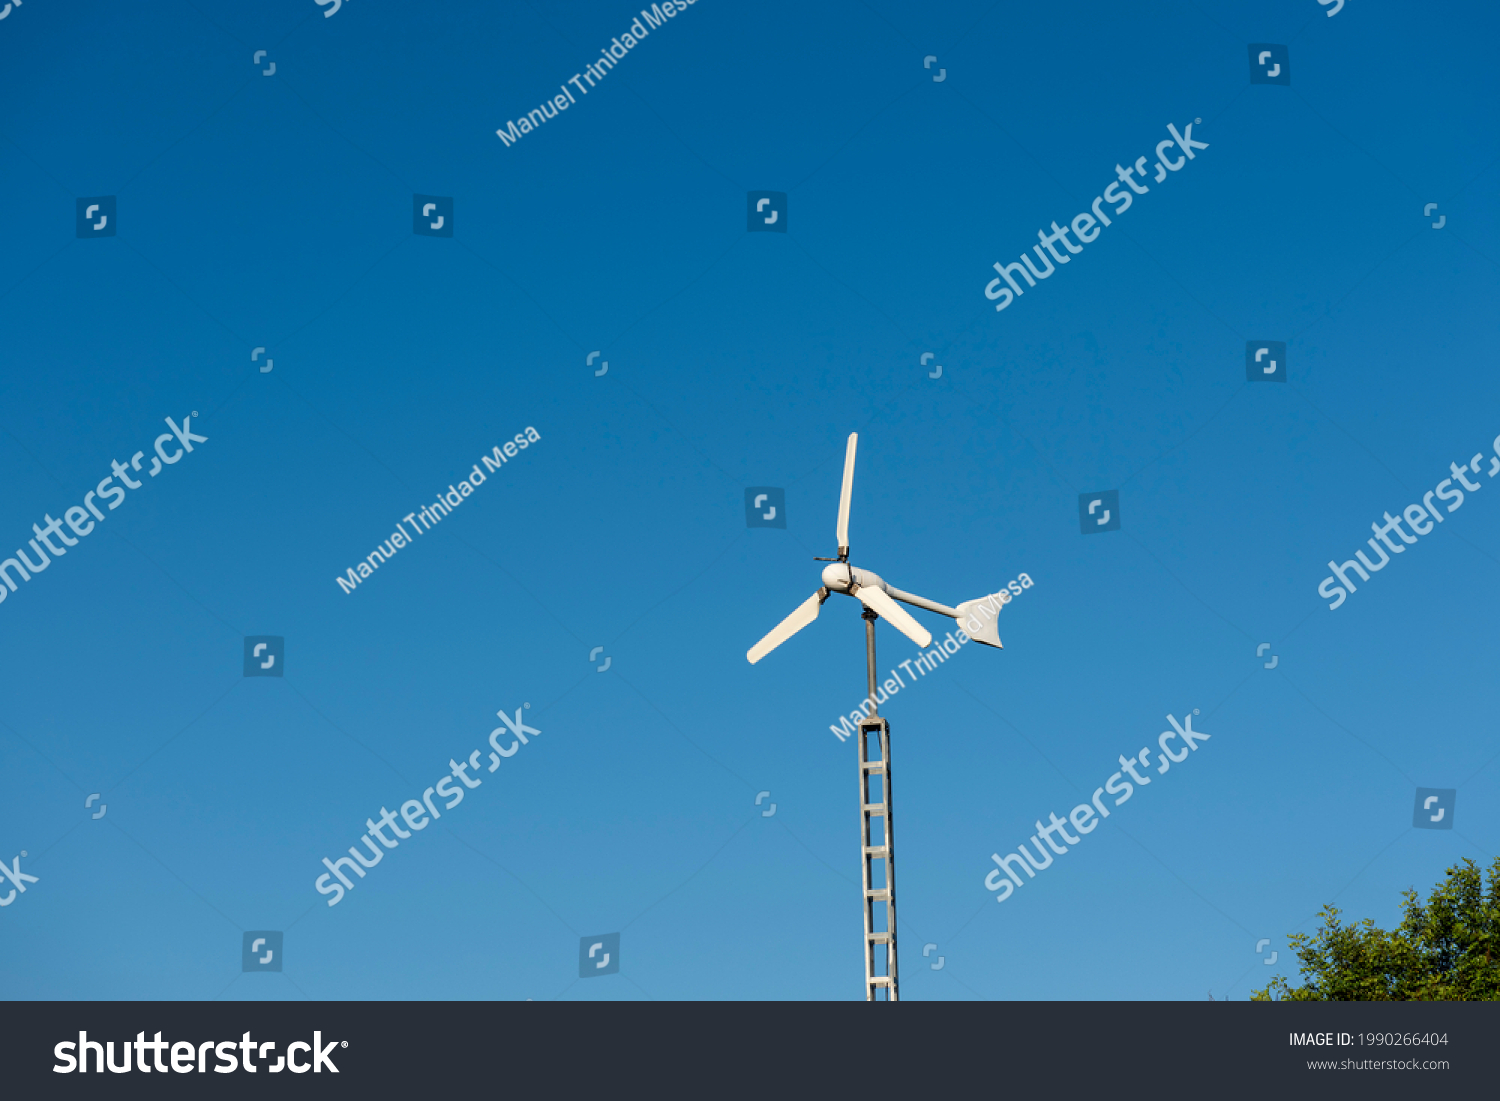 stock-photo-wind-turbine-for-home-use-on